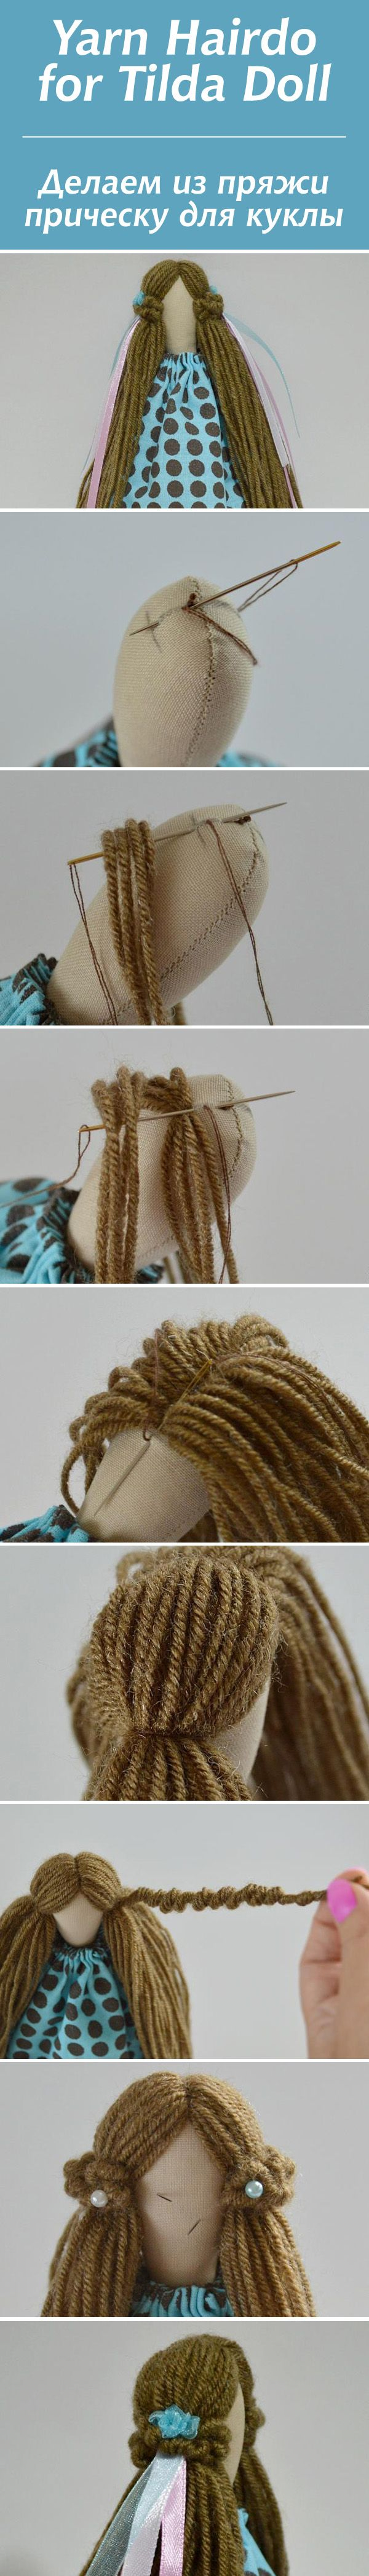 ... Yarn Hairdo for Tilda Doll #tilda